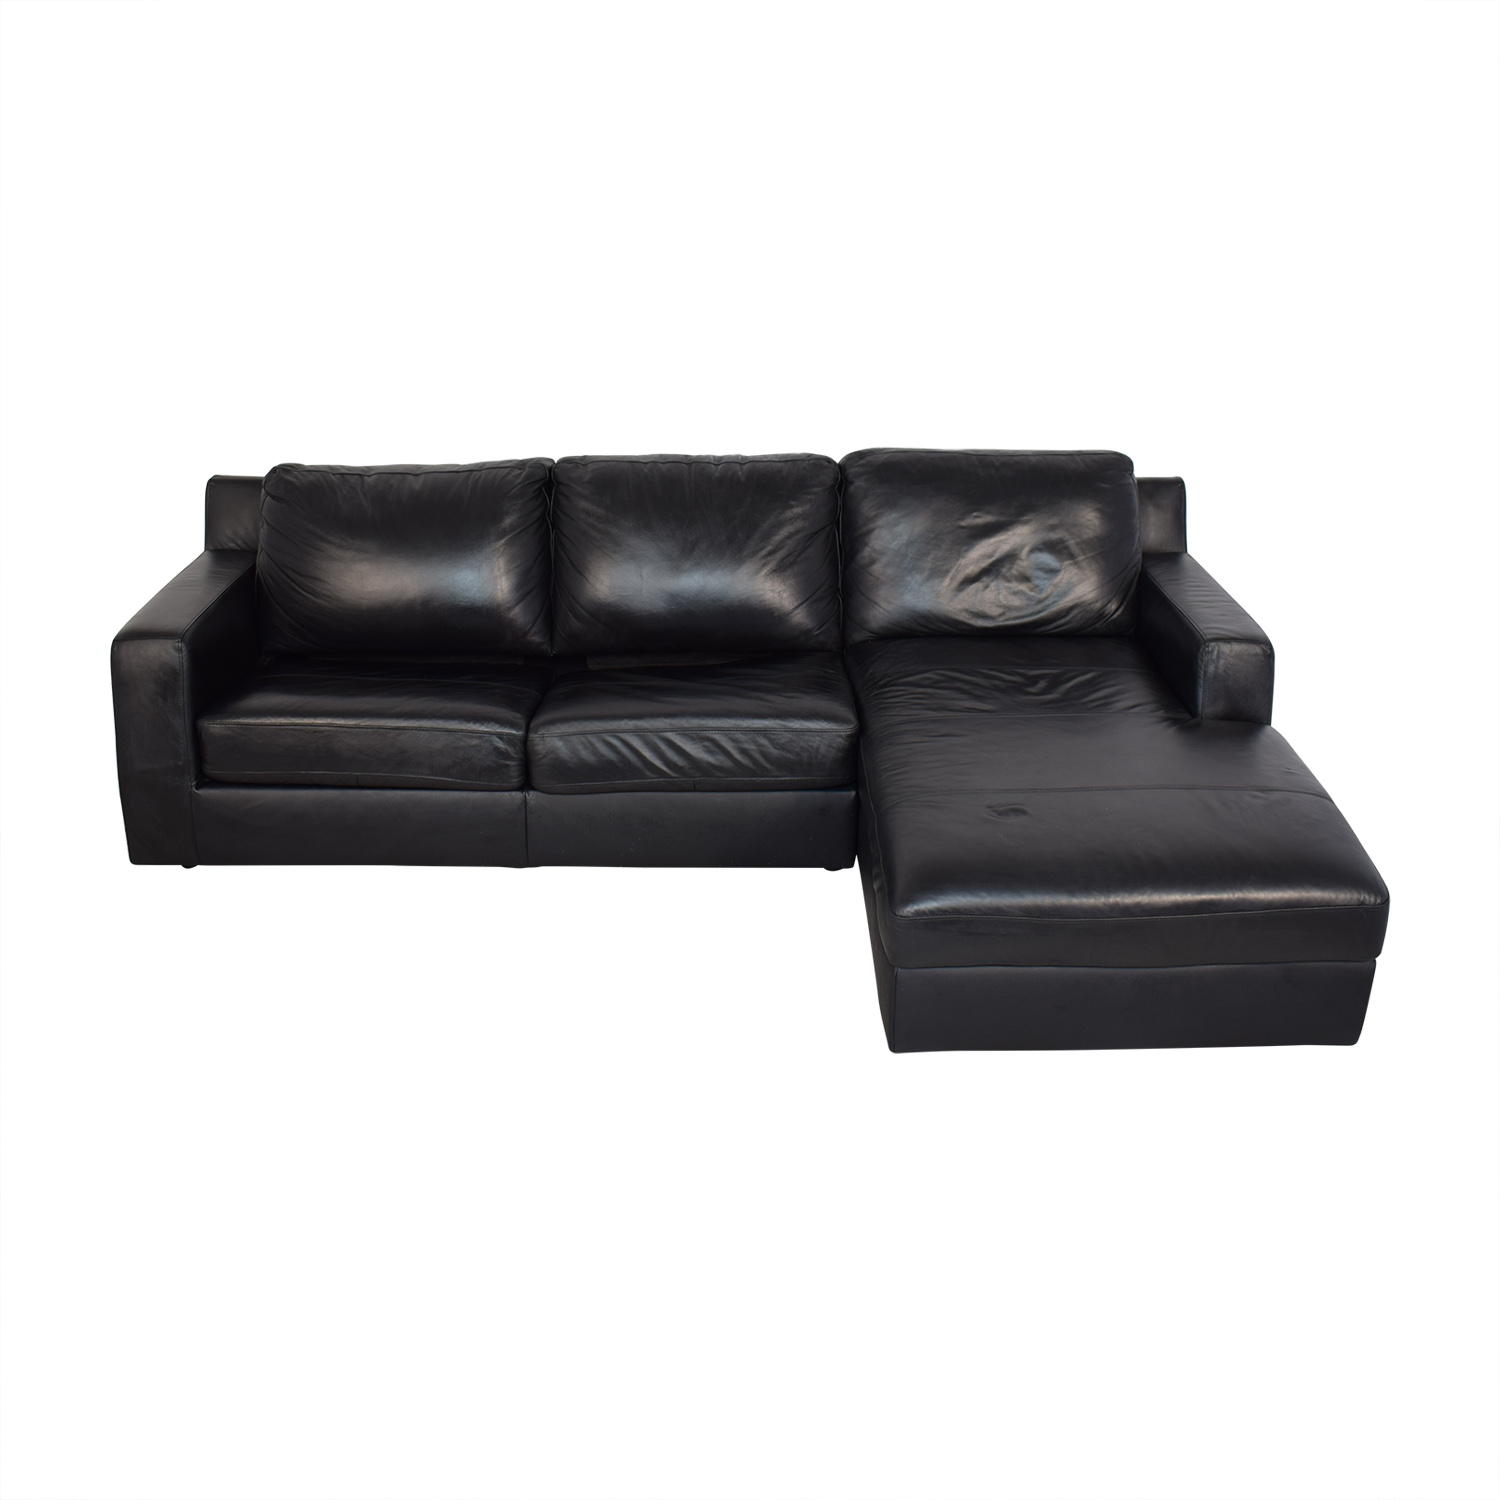 shop J&M Furniture Elizabeth Sleeper Sectional Sofa J&M Furniture Sofas